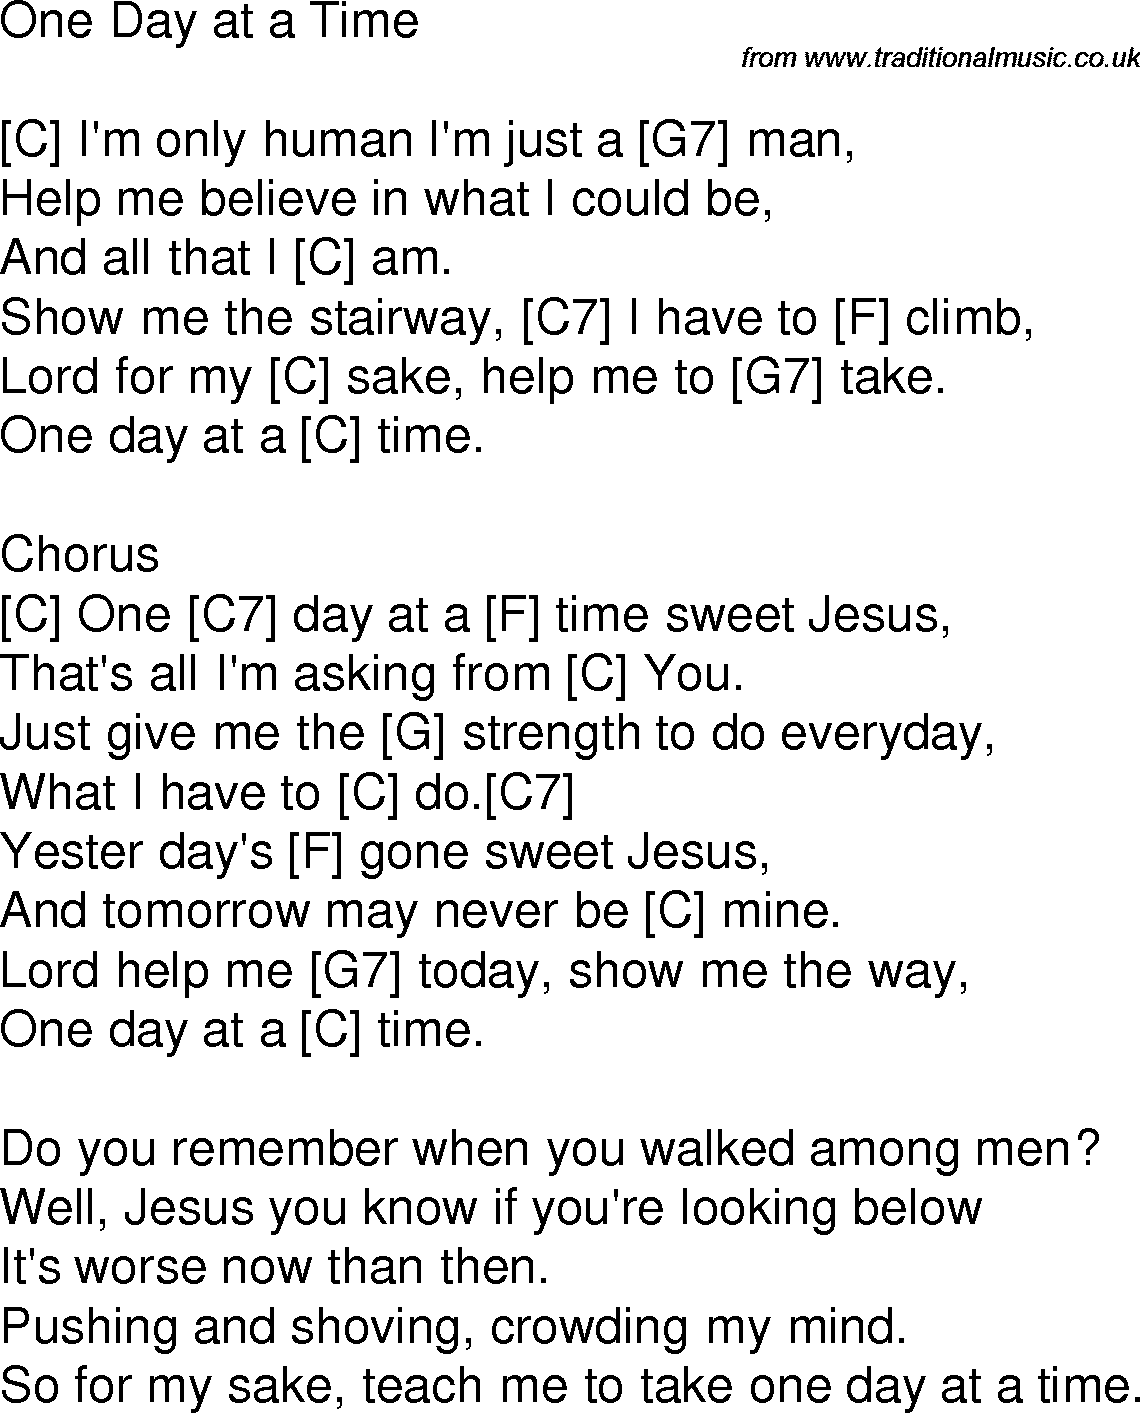 Old Time Song Lyrics With Chords For One Day At A Time C Music